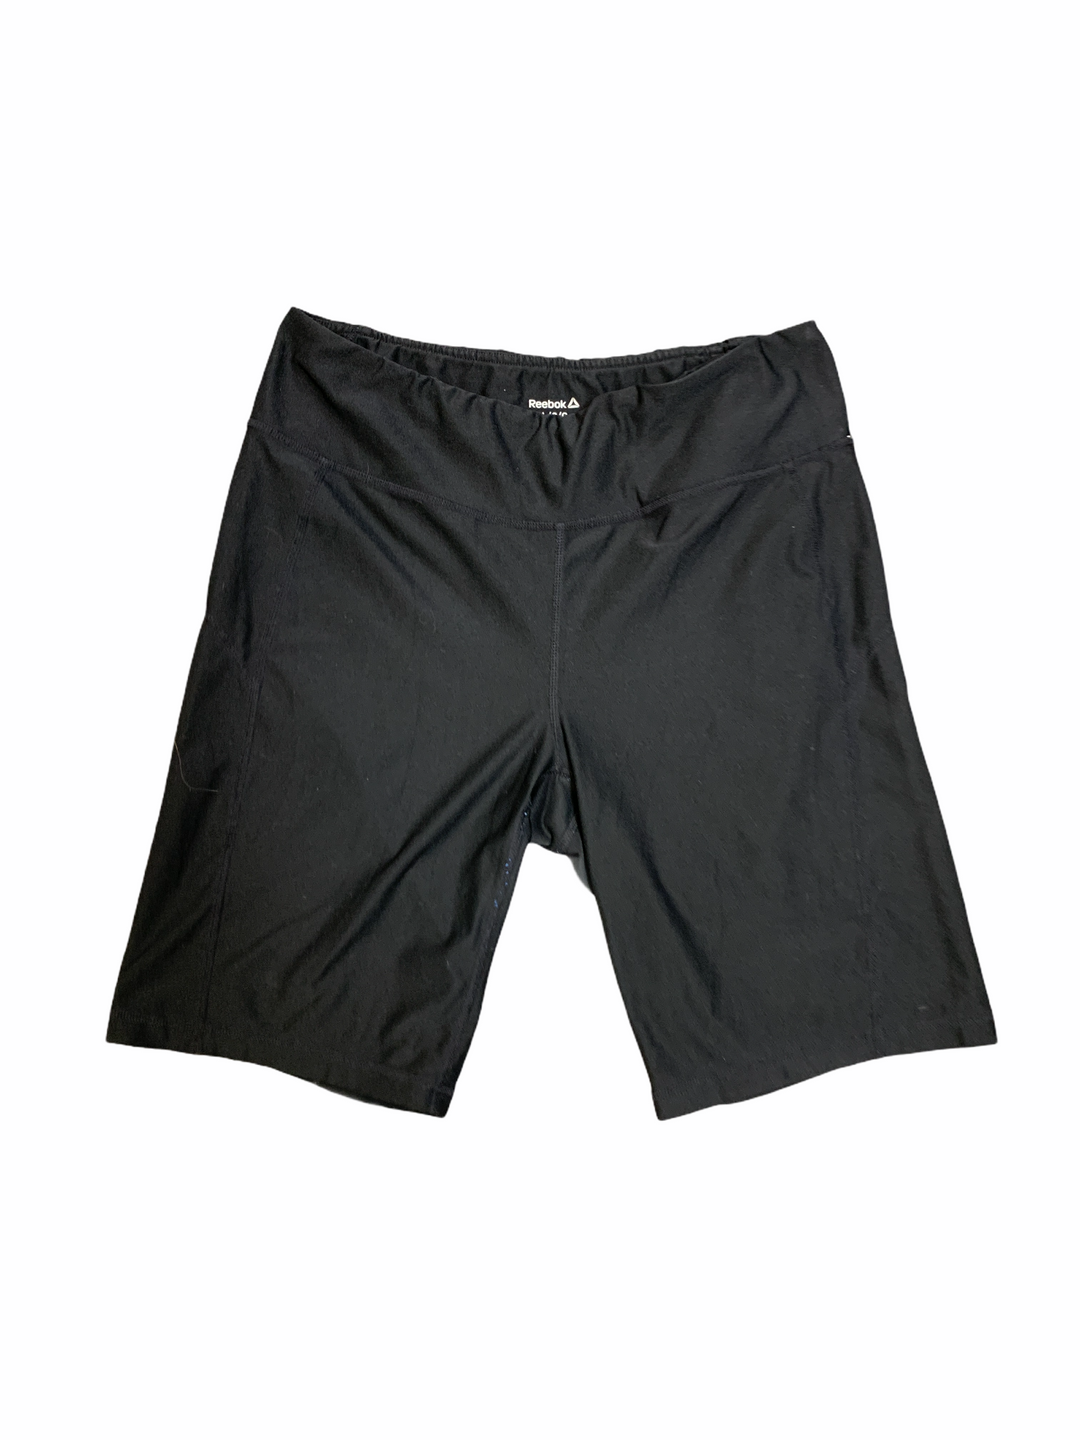 Primary Photo - BRAND: REEBOK <BR>STYLE: ATHLETIC SHORTS <BR>COLOR: BLACK <BR>SIZE: L <BR>SKU: 223-22393-5880